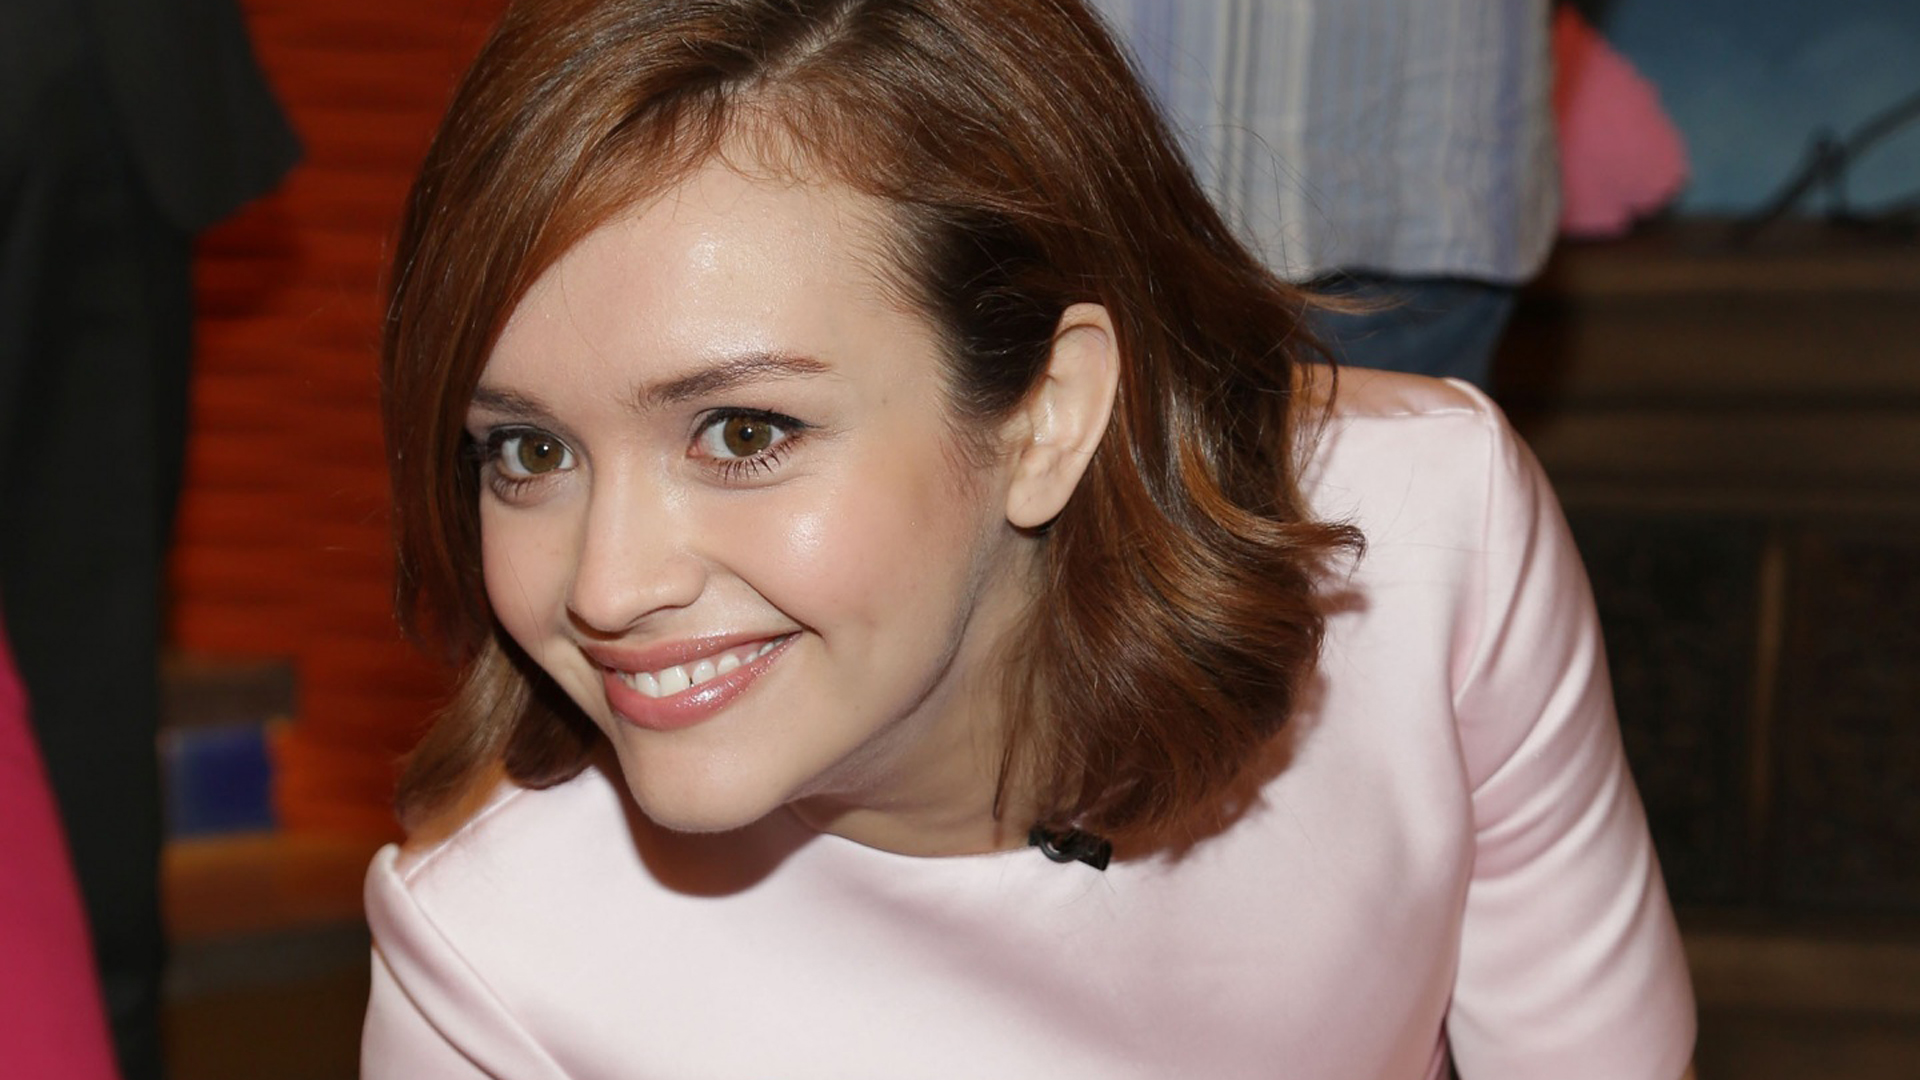 olivia cooke iconsolivia cooke instagram, olivia cooke tumblr, olivia cooke fansite, olivia cooke and christopher abbott, olivia cooke zimbio, olivia cooke 2017, olivia cooke sundance, olivia cooke vk, olivia cooke wiki, olivia cooke png, olivia cooke bates motel, olivia cooke reddit, olivia cooke photo gallery, olivia cooke interview, olivia cooke site, olivia cooke shaved head, olivia cooke wallpaper, olivia cooke icons, olivia cooke official instagram, olivia cooke facebook